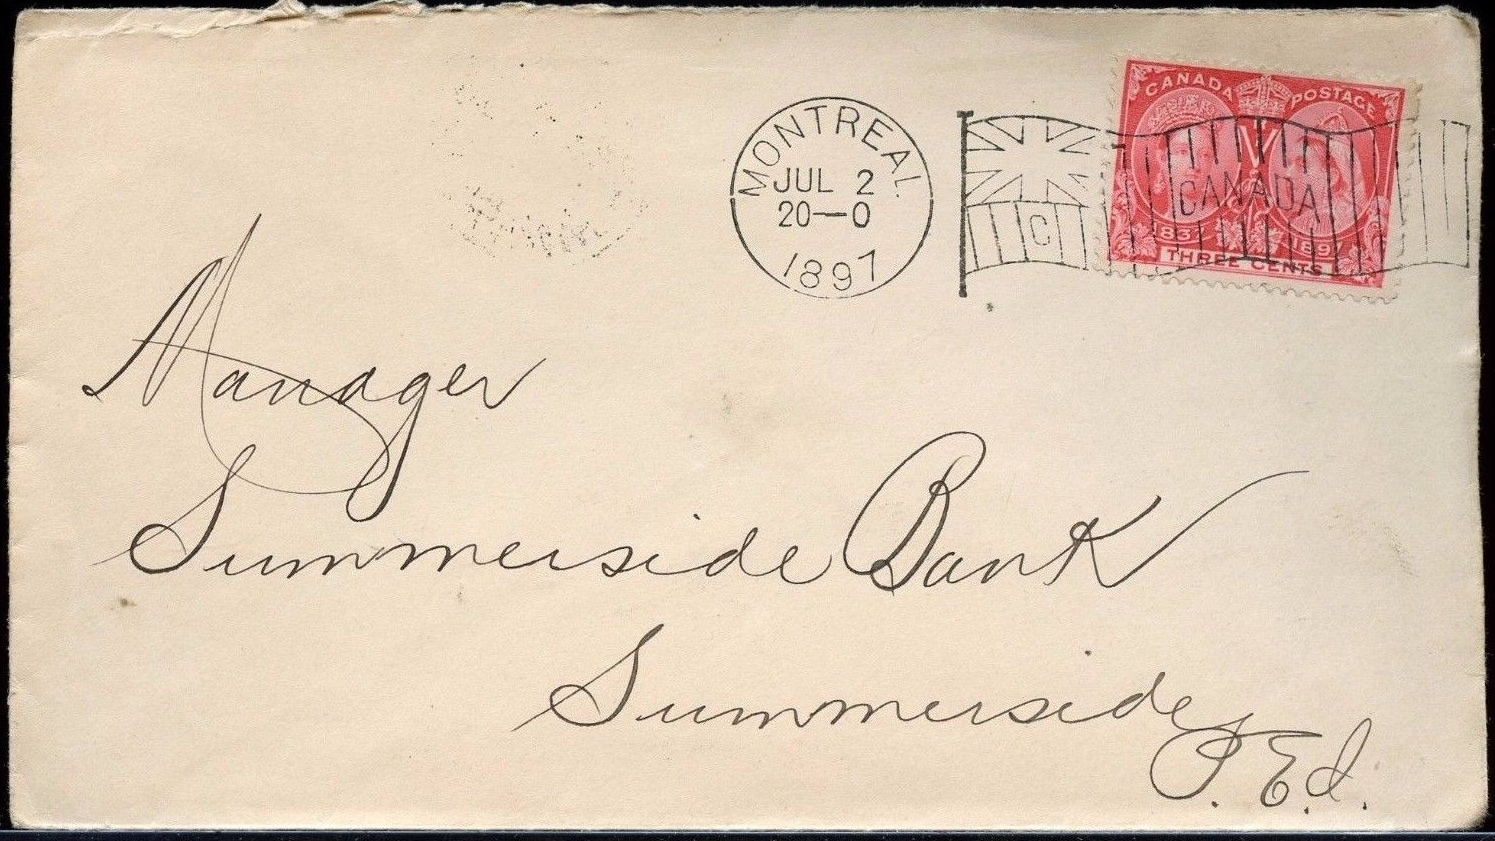 Cover mailed from Montreal on July 2, 1897, bearing a Canadian flag postmark.